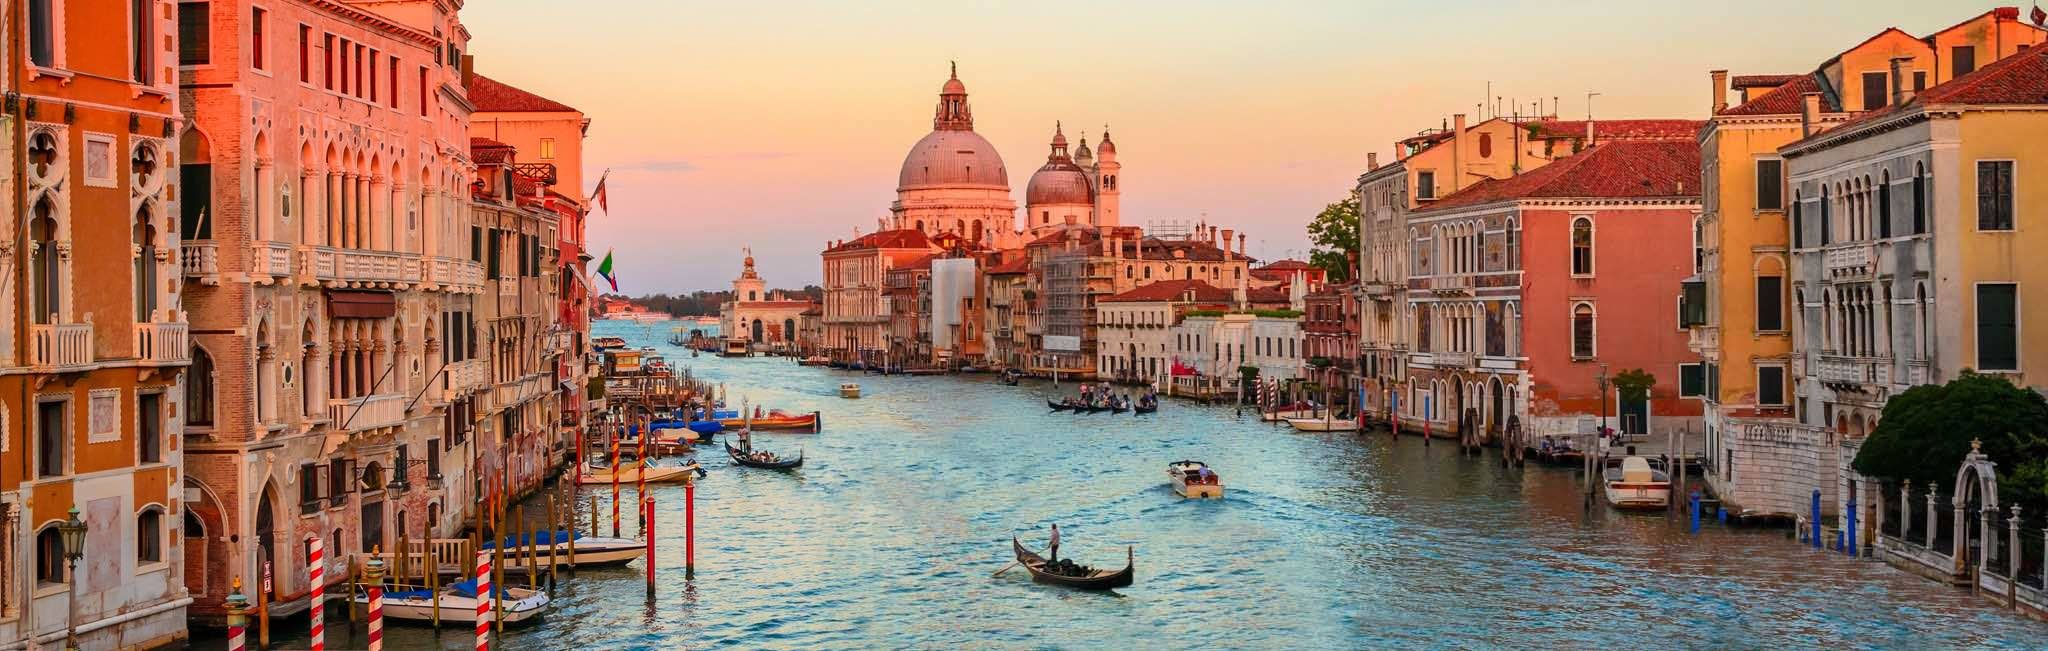 Italy tour of Venice's Grand Canal